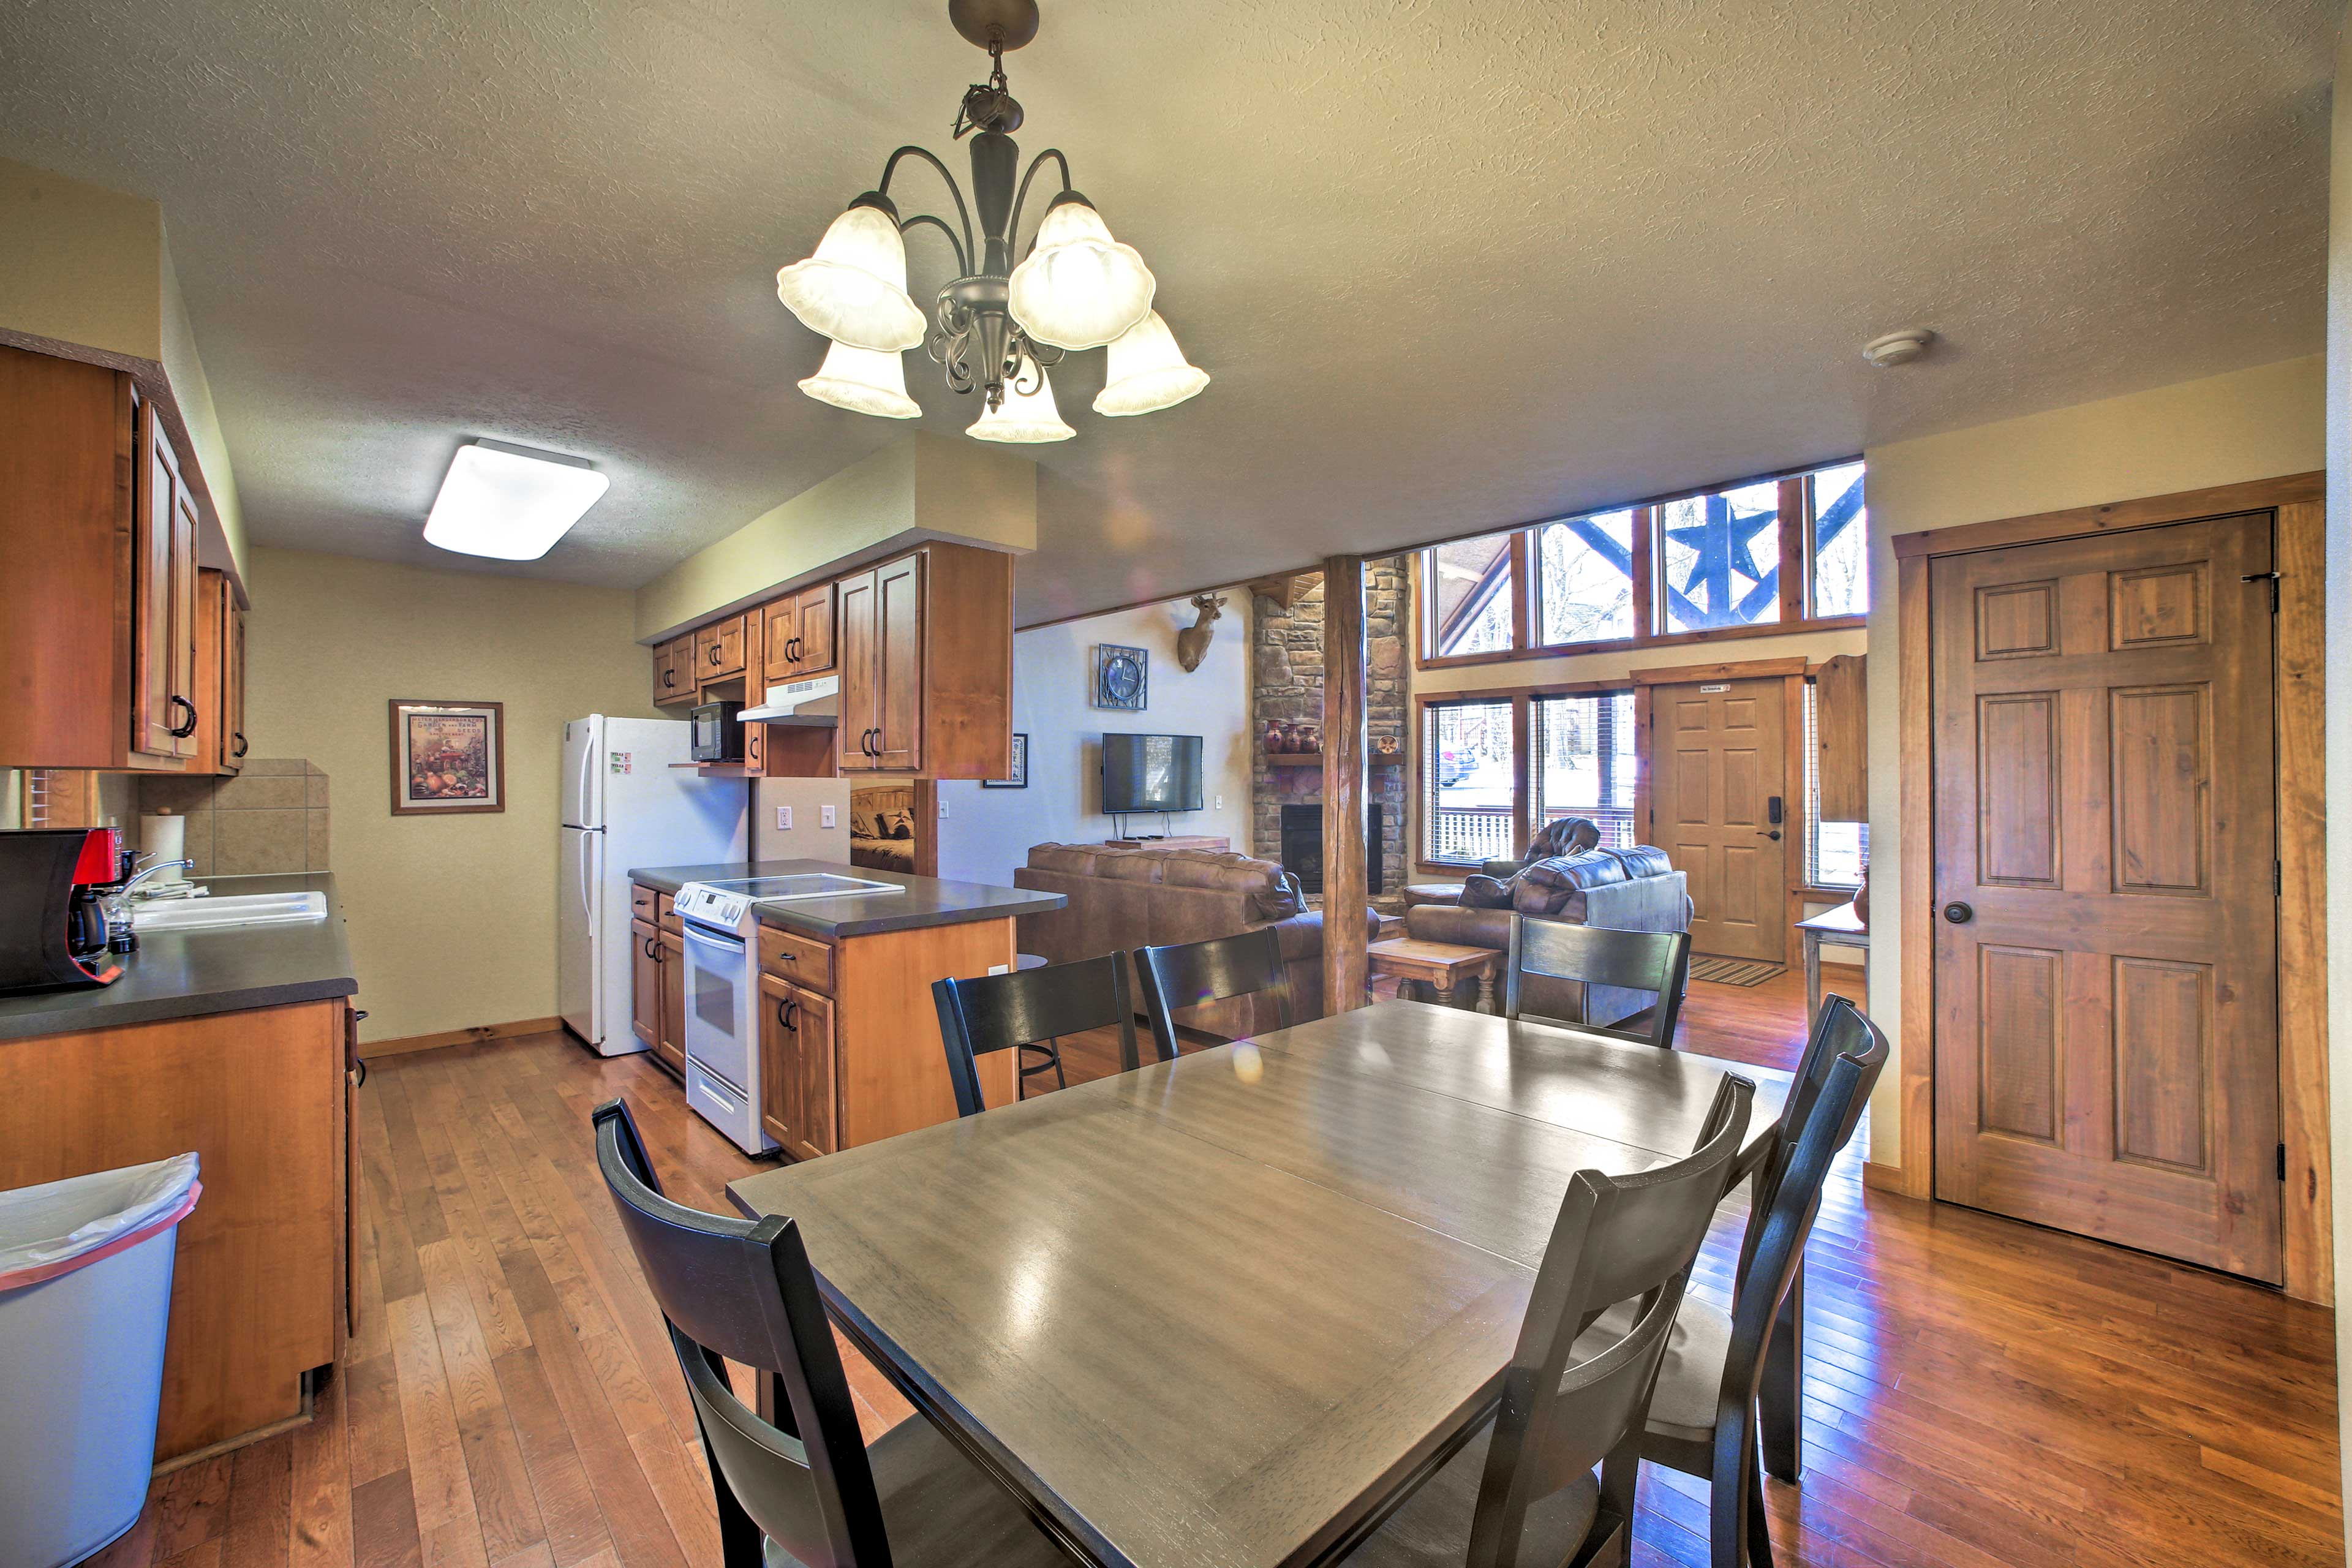 Gather around the 6-seat dining table for a home-cooked family meal.